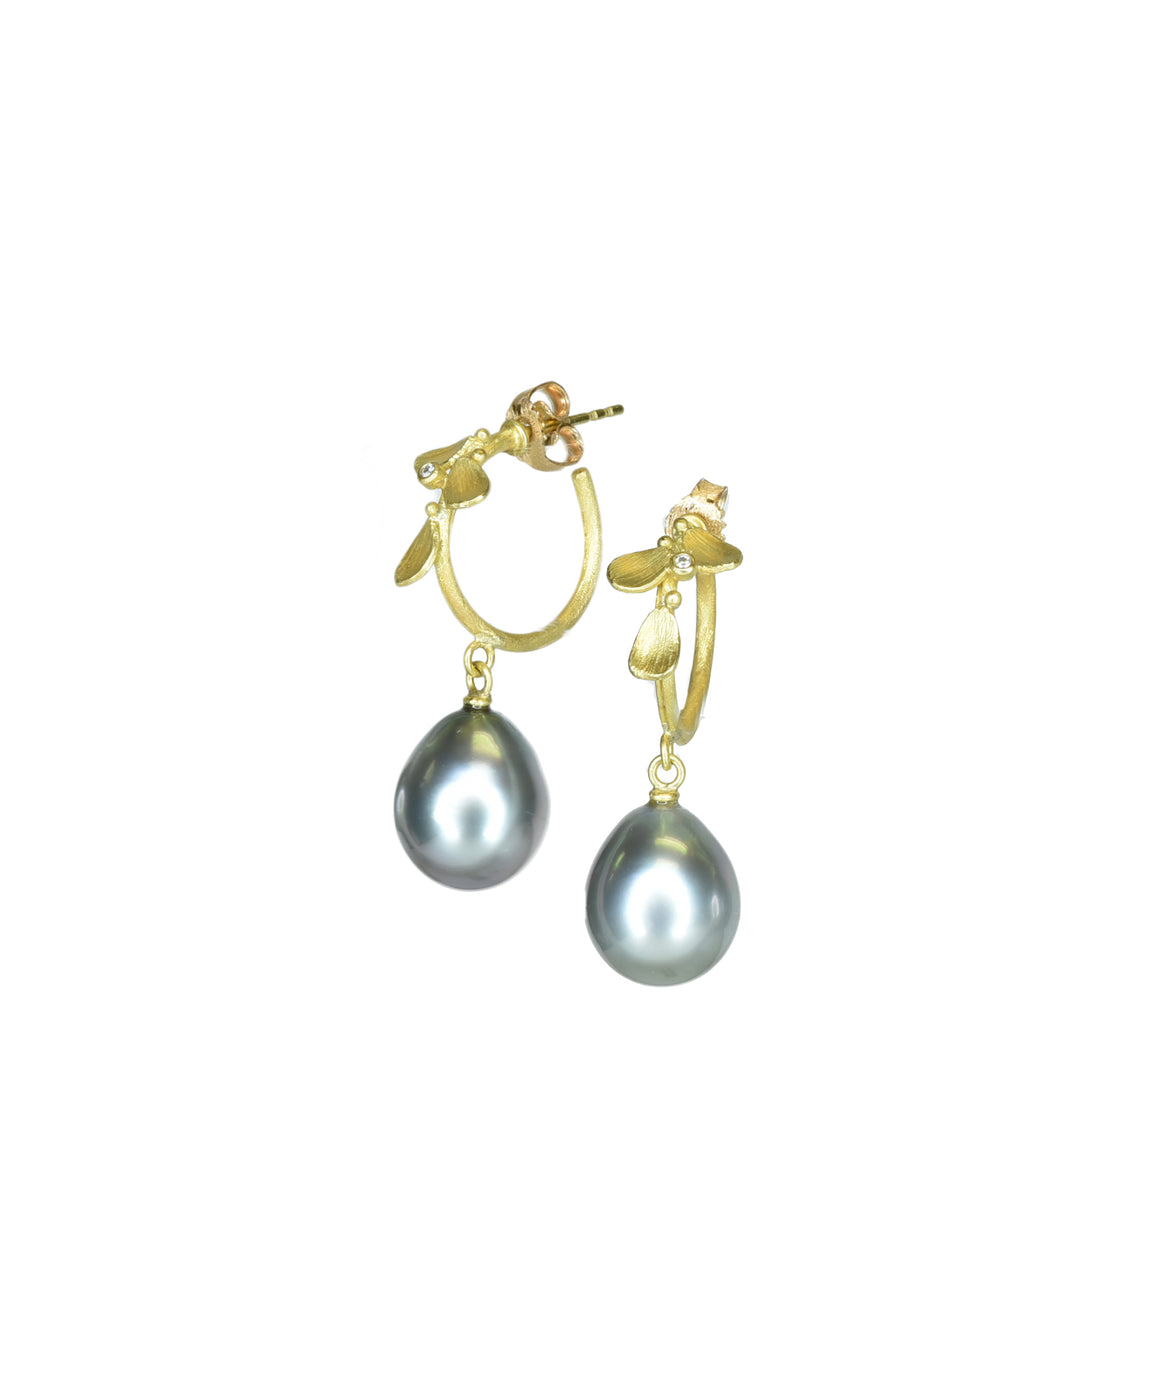 Pearl Drop Leafy Hoop Earrings - Lesley Ann Jewels